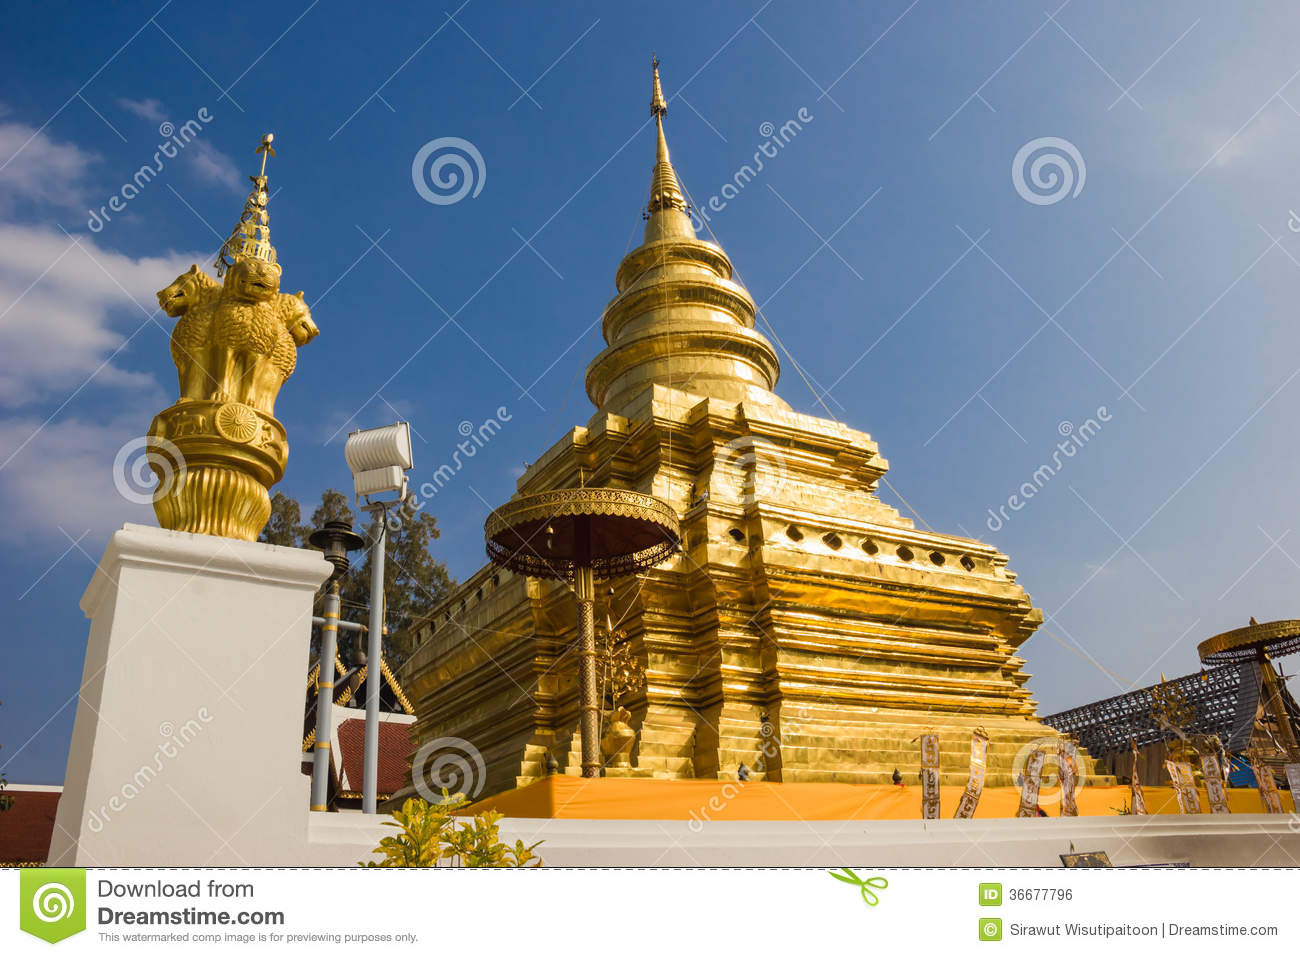 Chom Thong Thailand  city photo : Golden Pagoda at Wat Phra That Sri Chom Thong, Thailand.